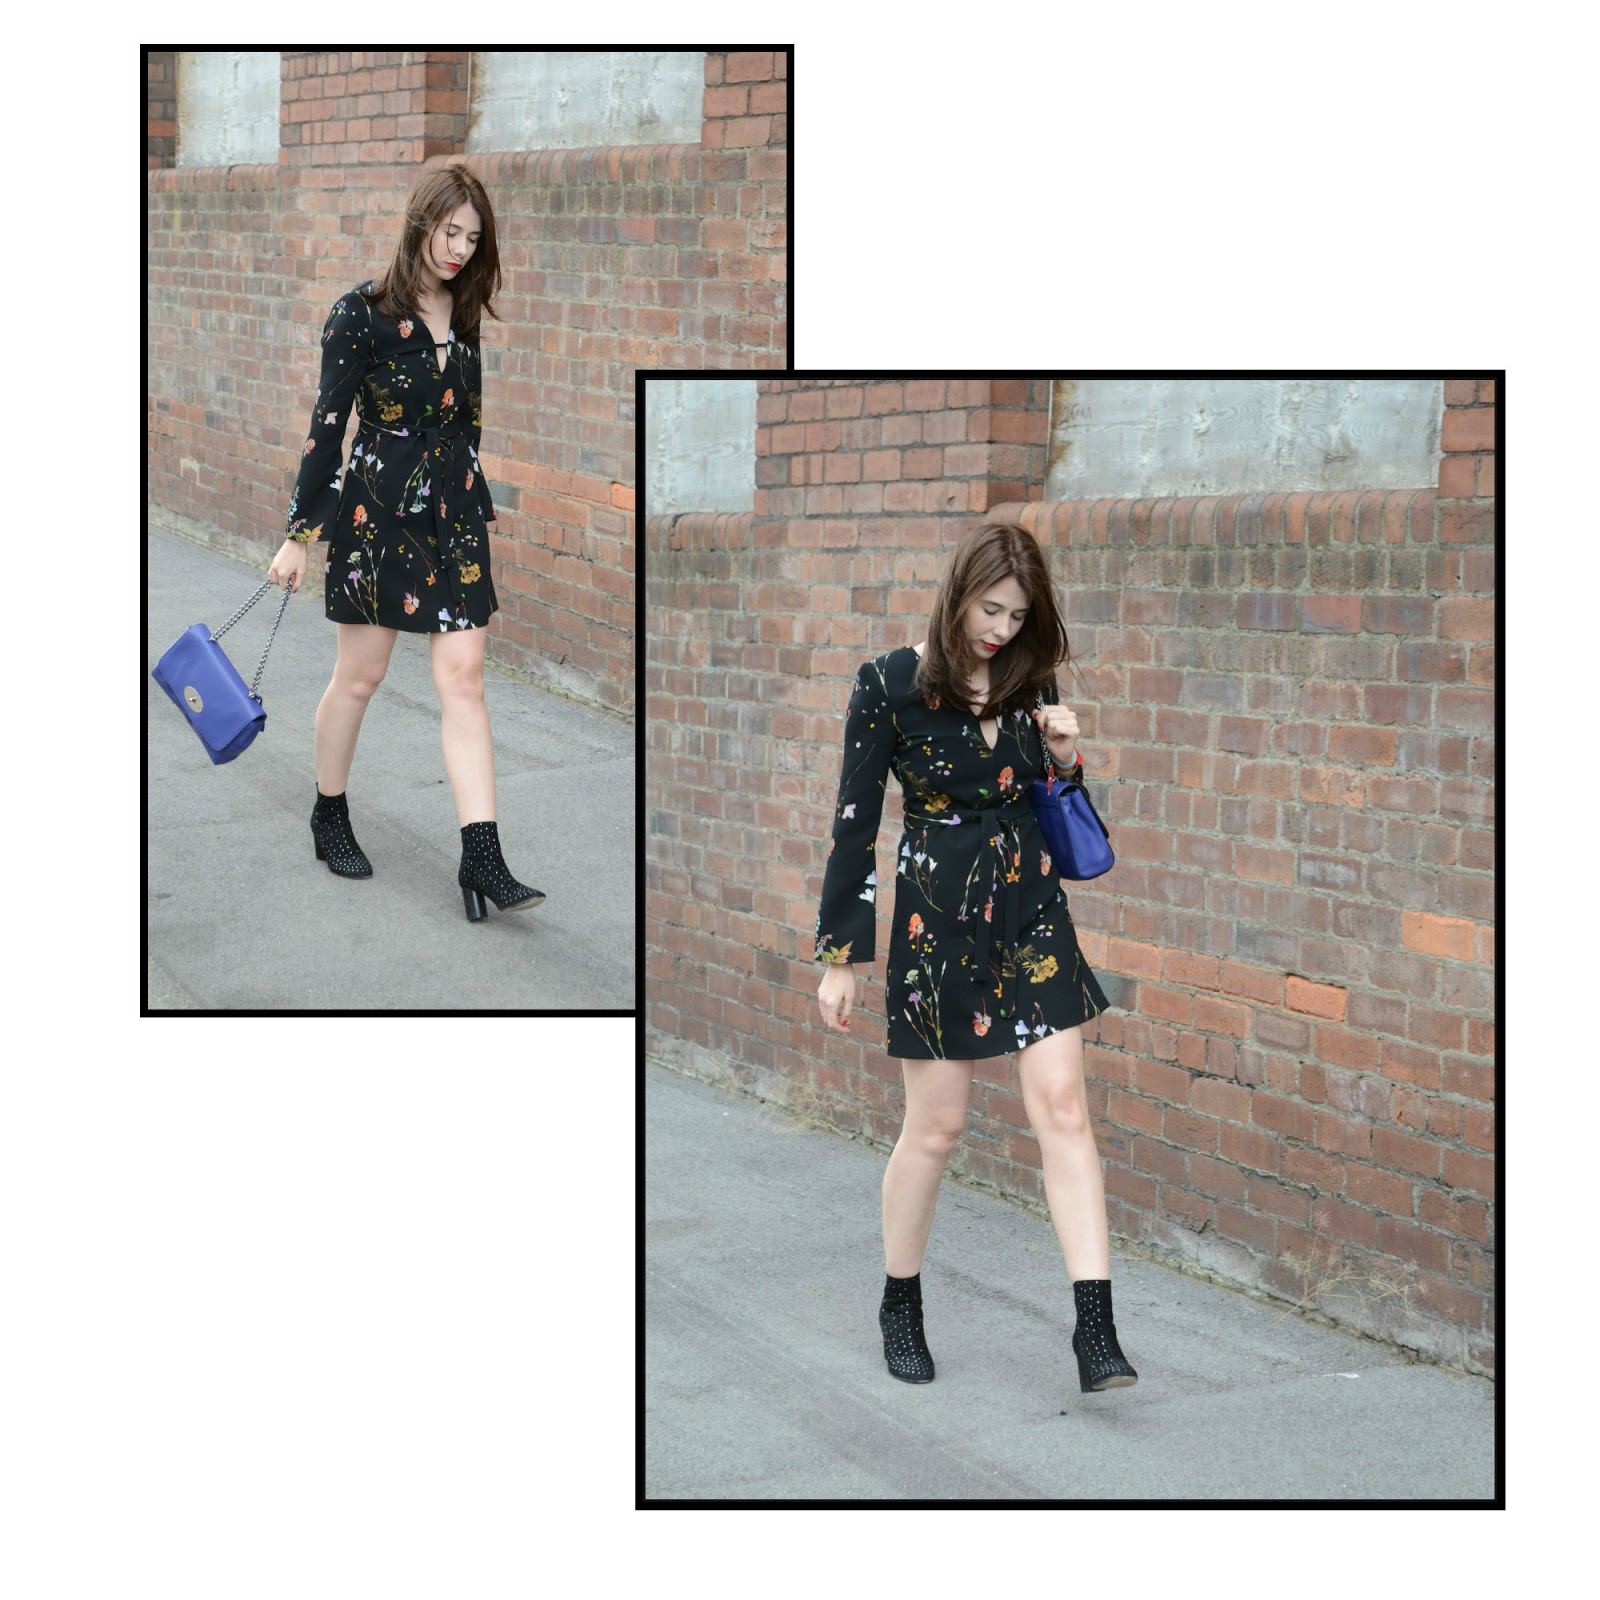 GUCCI, Mulberry Lily Bag, Floral Topshop dress, Asos ankle studded boots.